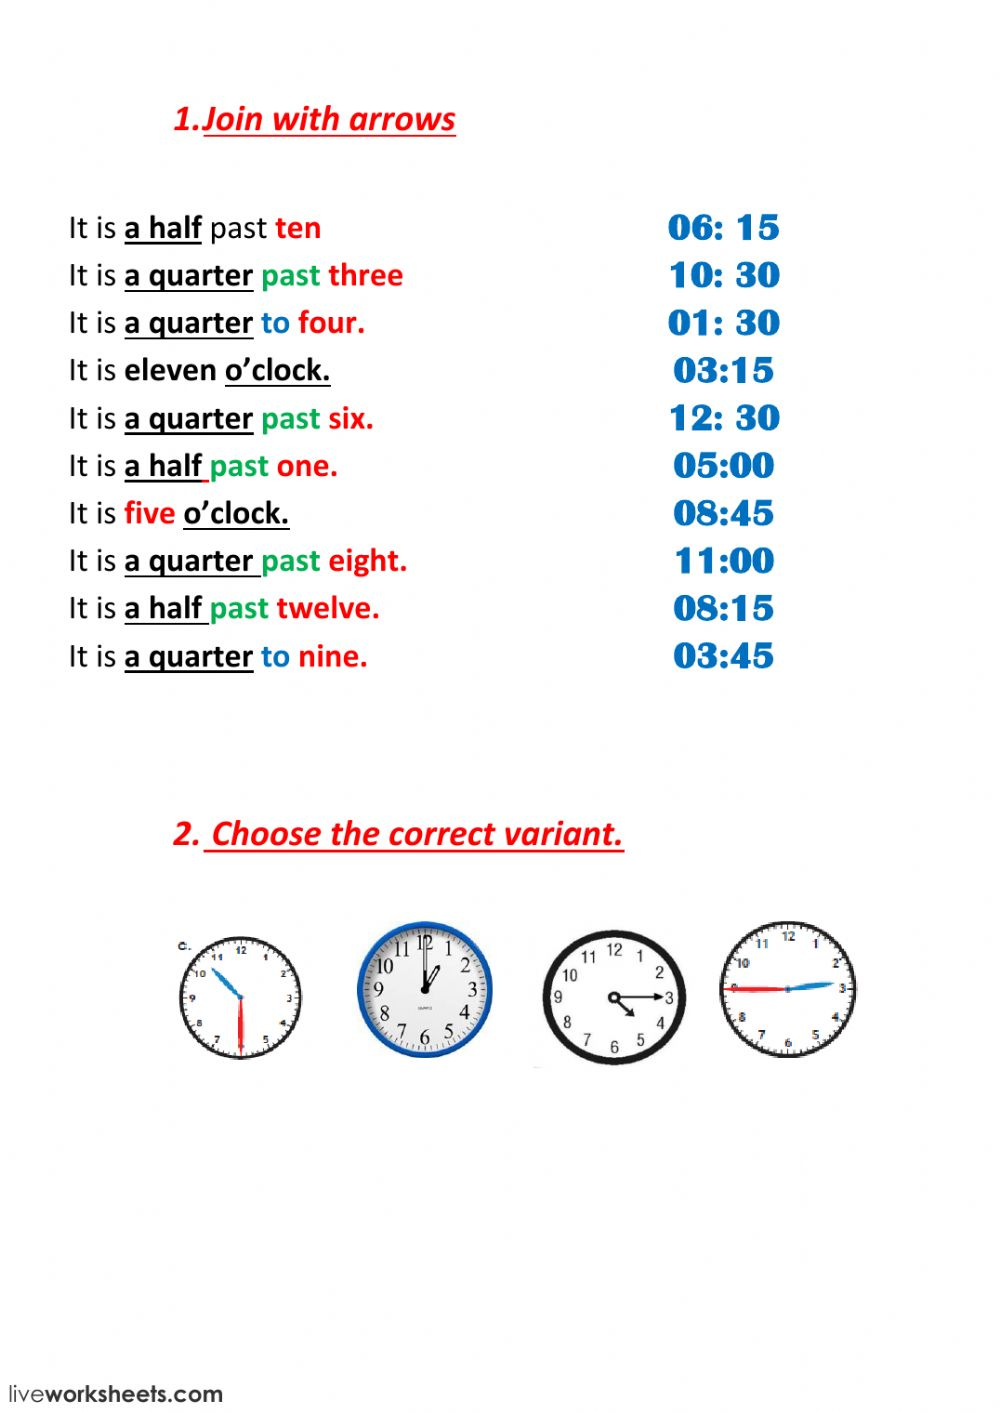 Telling Time Worksheets in addition Clock Worksheets For Second Grade Math Worksheets For Graders Second furthermore O'clock  Half Past and Quarter Past To Times Worksheet   Worksheet likewise Telling Time Worksheets Quarter Past The best worksheets image in addition Clock Worksheets Quarter Past Grade 2 Time Half To Counting Quarters together with Telling Time Quarter Past Worksheets Telling Time Quarter Past also Quarter Past 2 Math Quarter Worksheets Math Tg Quarter 2 likewise Telling Time Worksheets • O'clock Half Past Quarter to likewise Telling Time to 15  Quarter To and Quarter Past  Worksheets    TpT further Black Digital Clock Worksheets Grade Time For 2 1 Worksheet Matching likewise  moreover  furthermore Clock Worksheets Grade 4 Free Telling Time Worksheets Kindergarten additionally Telling Time Worksheets additionally Telling Time Worksheets • O'clock Half Past Quarter to together with Telling Time  Telling the time worksheet. on telling time quarter past worksheets